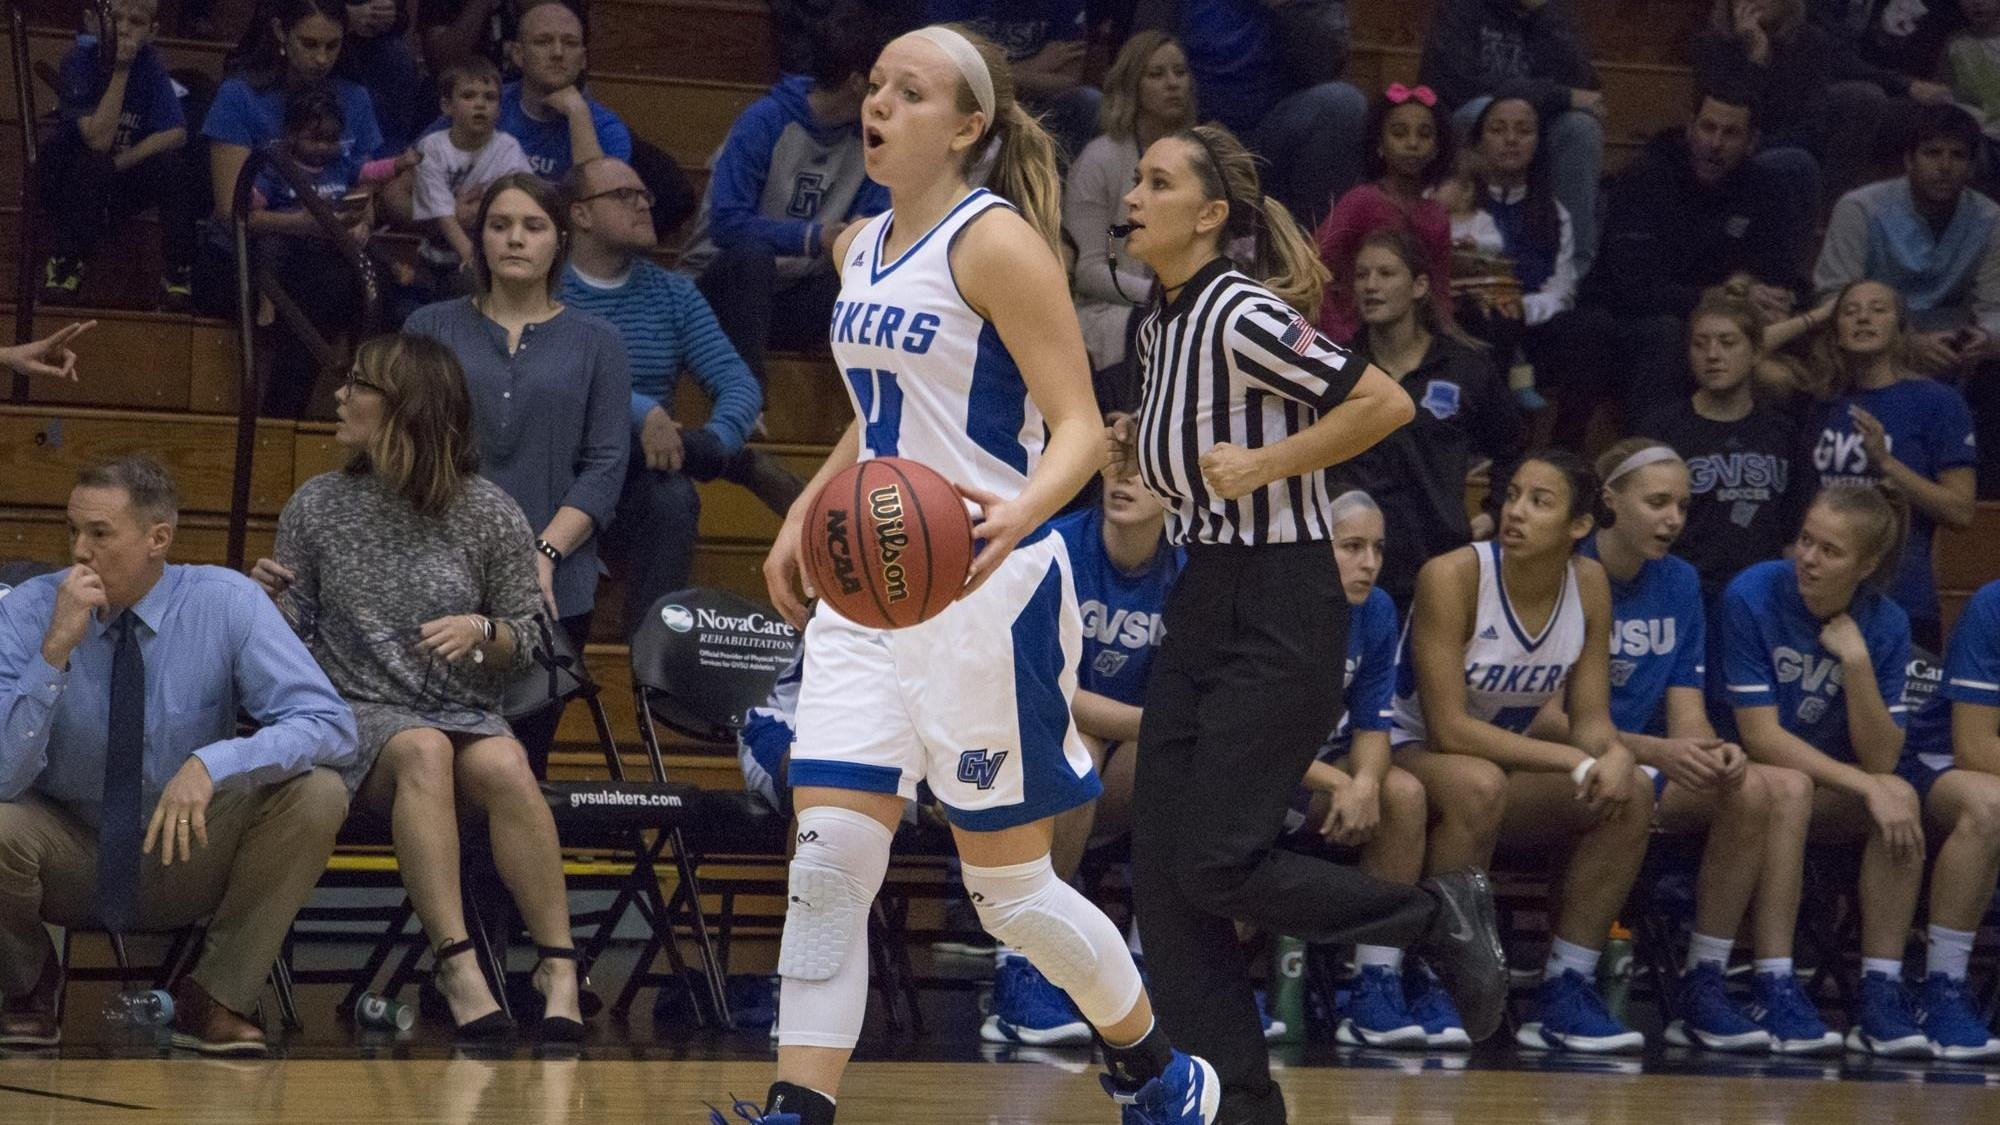 Jenn DeBoer's 32 points lead Grand Valley State to the big upset over No. 1 Ashland in DII women's basketball.